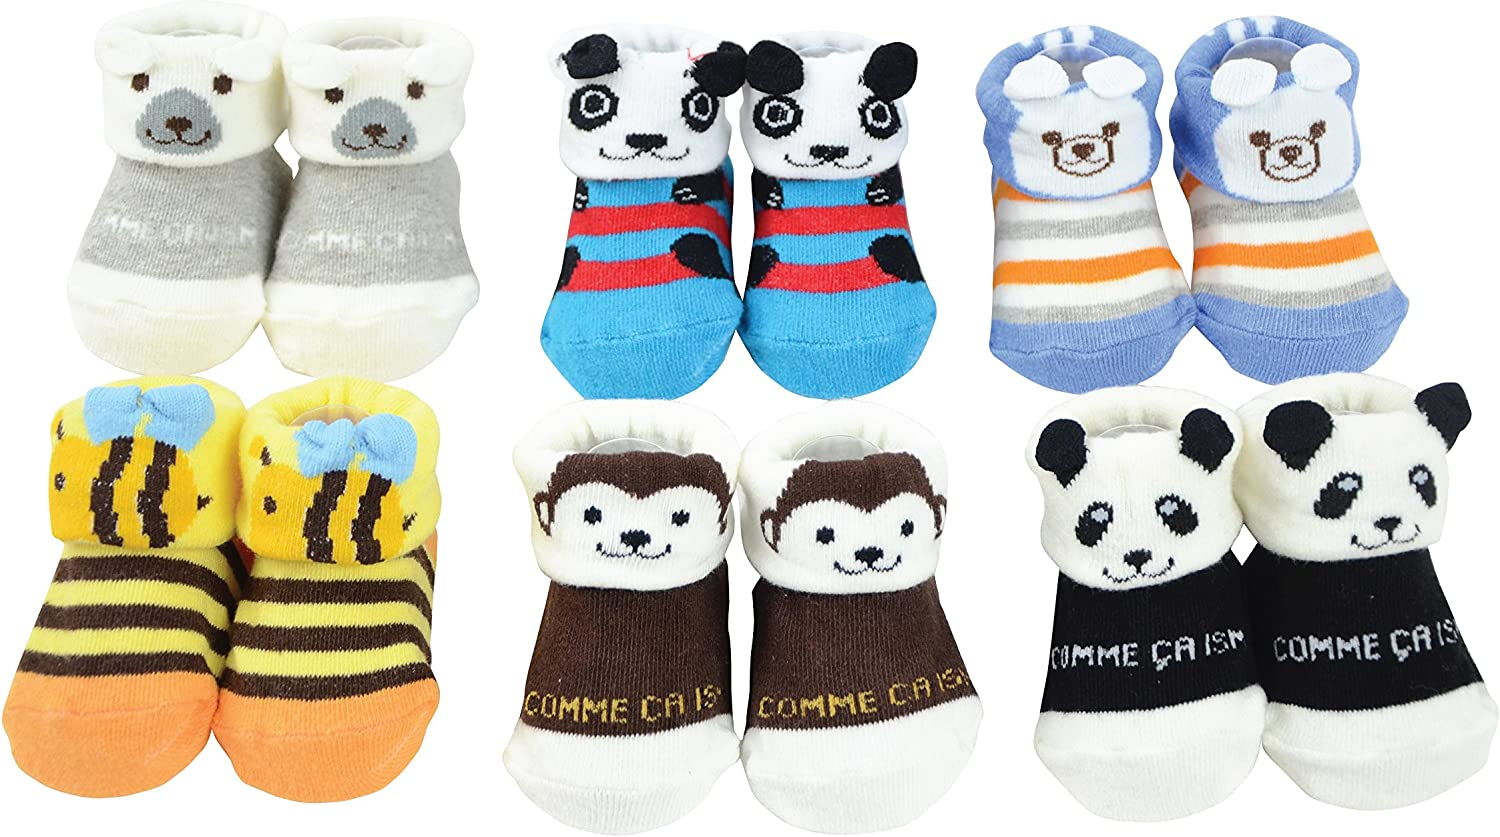 6 Pairs Infant Newborn Toddler Baby Low Cut Cute 3D Cartoon Anti-Skid Booties Sock Slippers